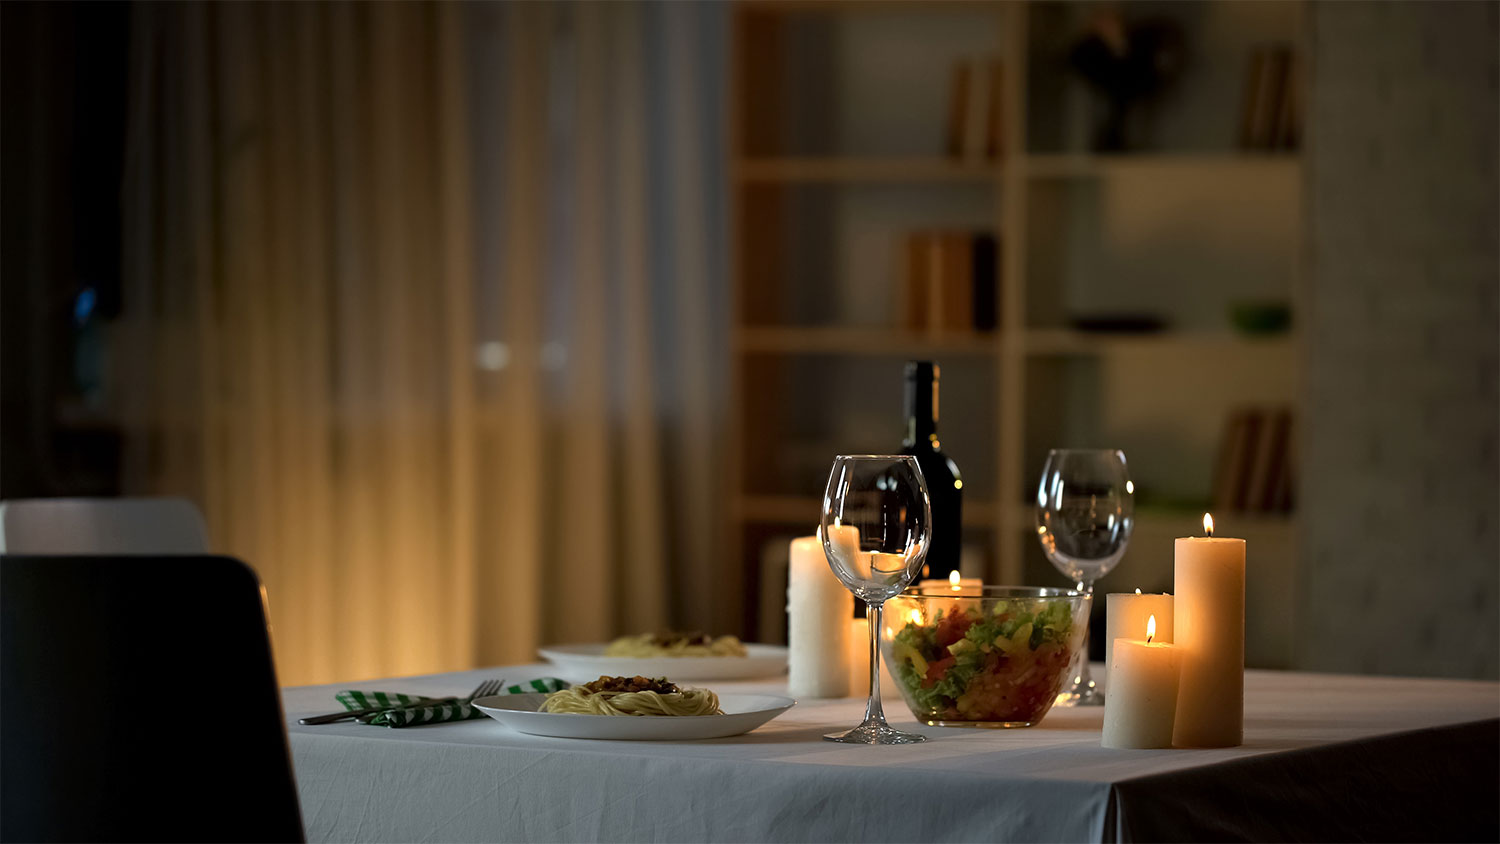 FUN IDEAS FOR AT-HOME DATE NIGHT ON A BUDGET